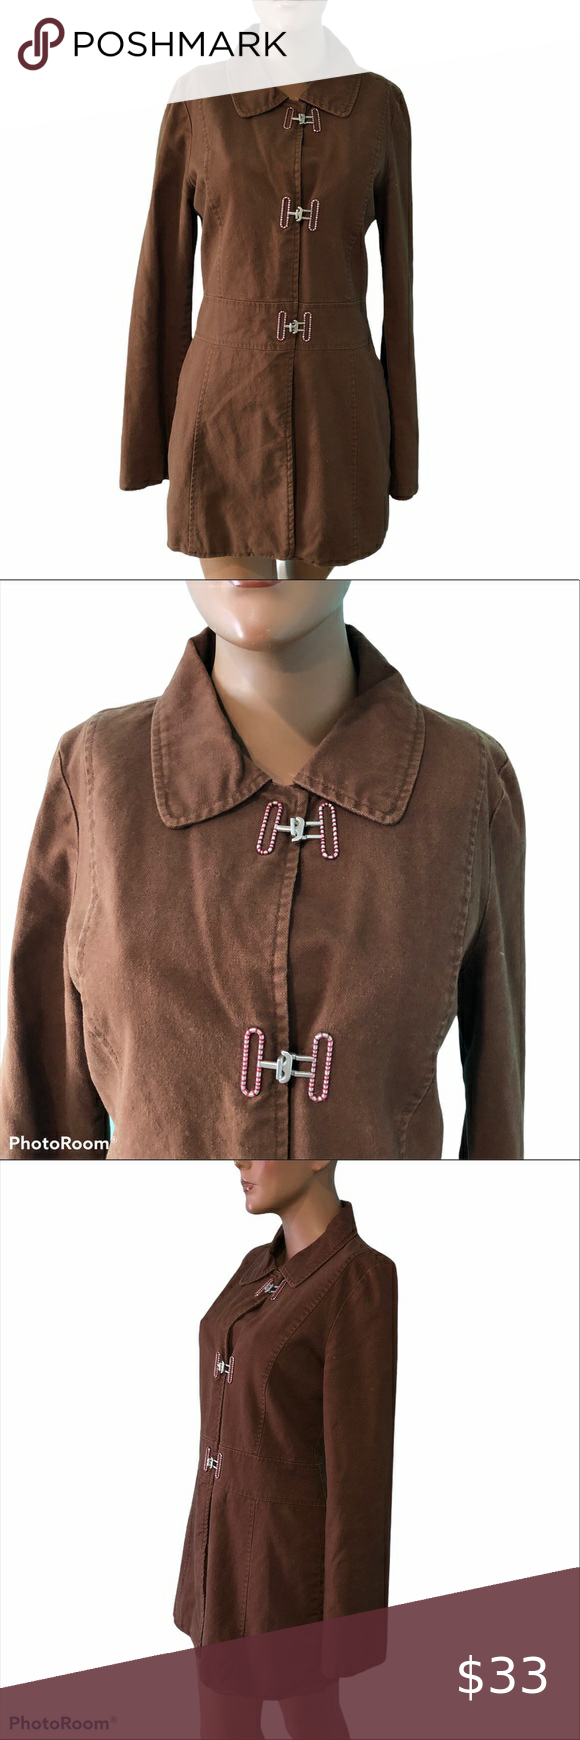 Fossil Casual Metal Clasp Button Jacket L Jacket Buttons Jackets Women Shopping [ 1740 x 580 Pixel ]